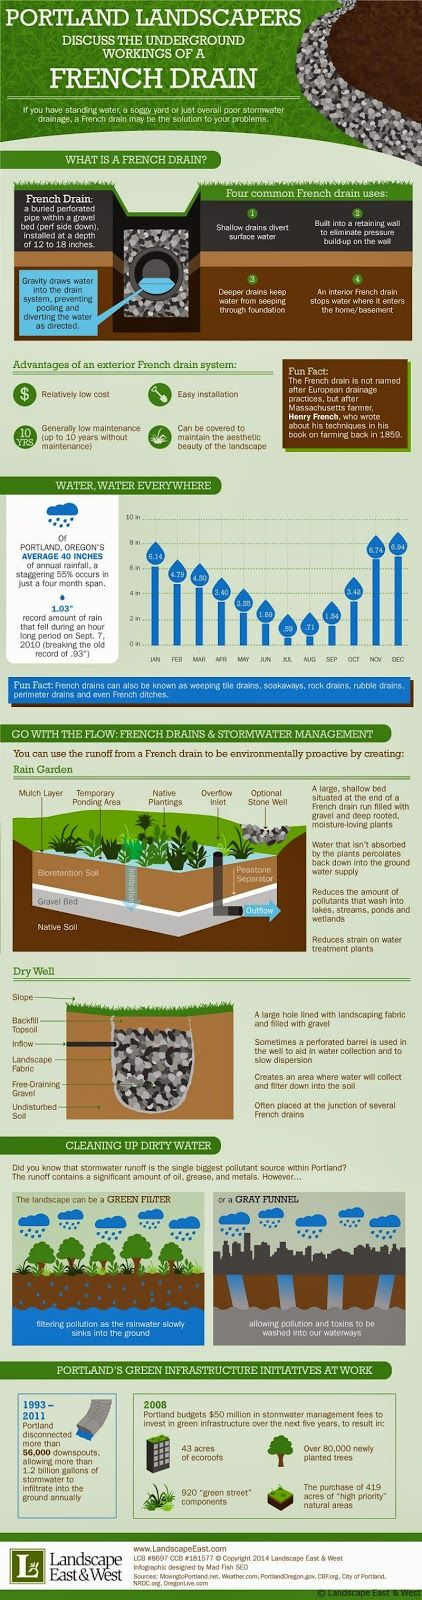 Portland Landscapers Discuss the Underground Workings of a French Drain.